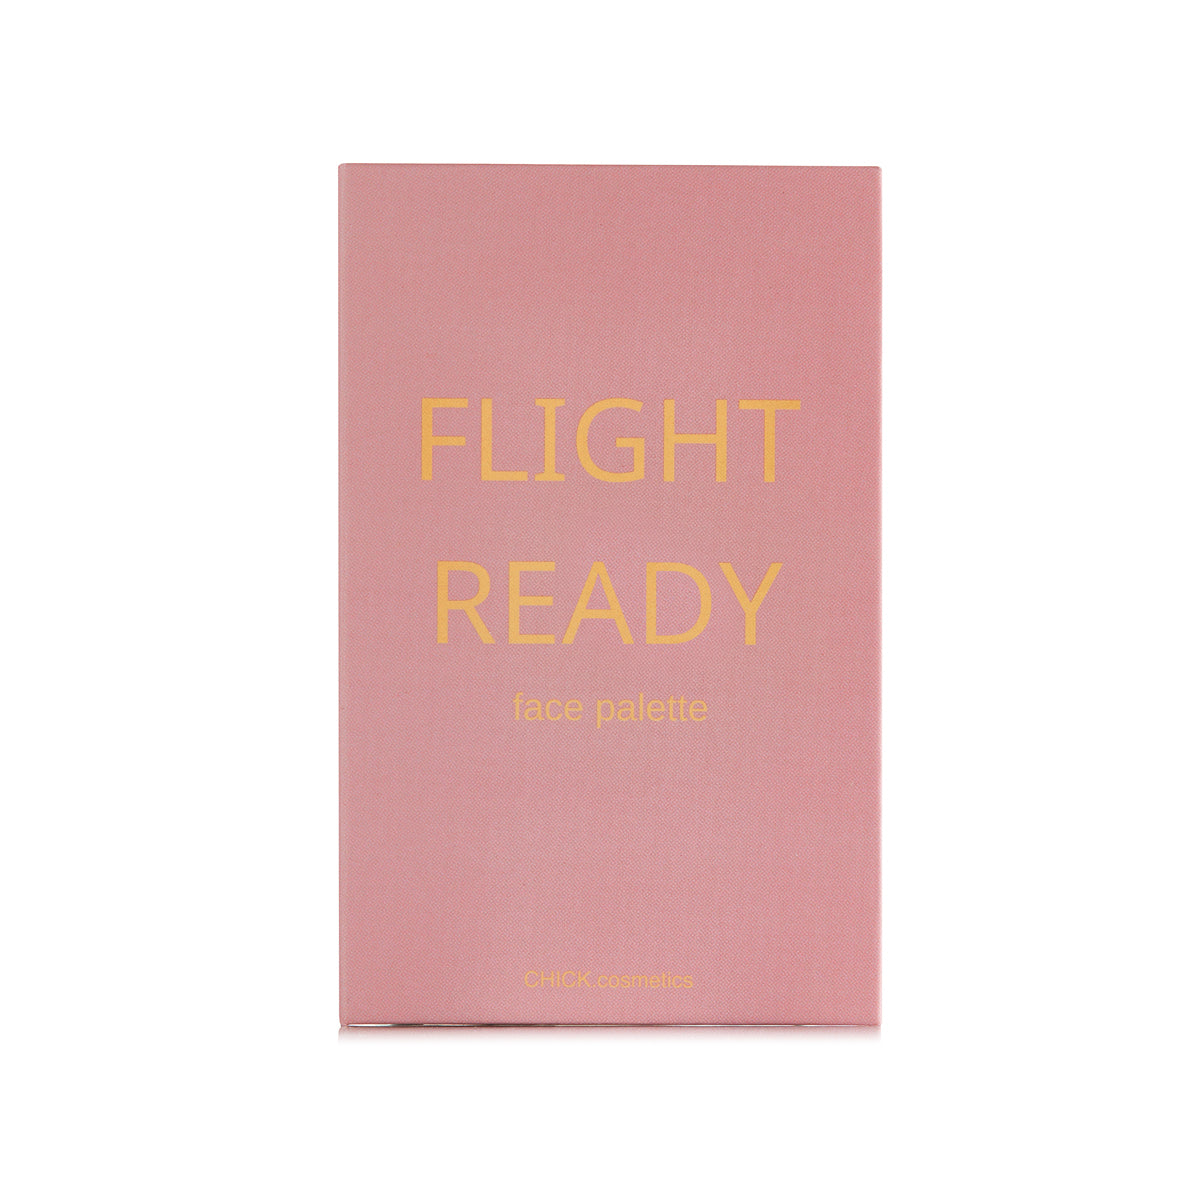 Flight Ready Face Palette